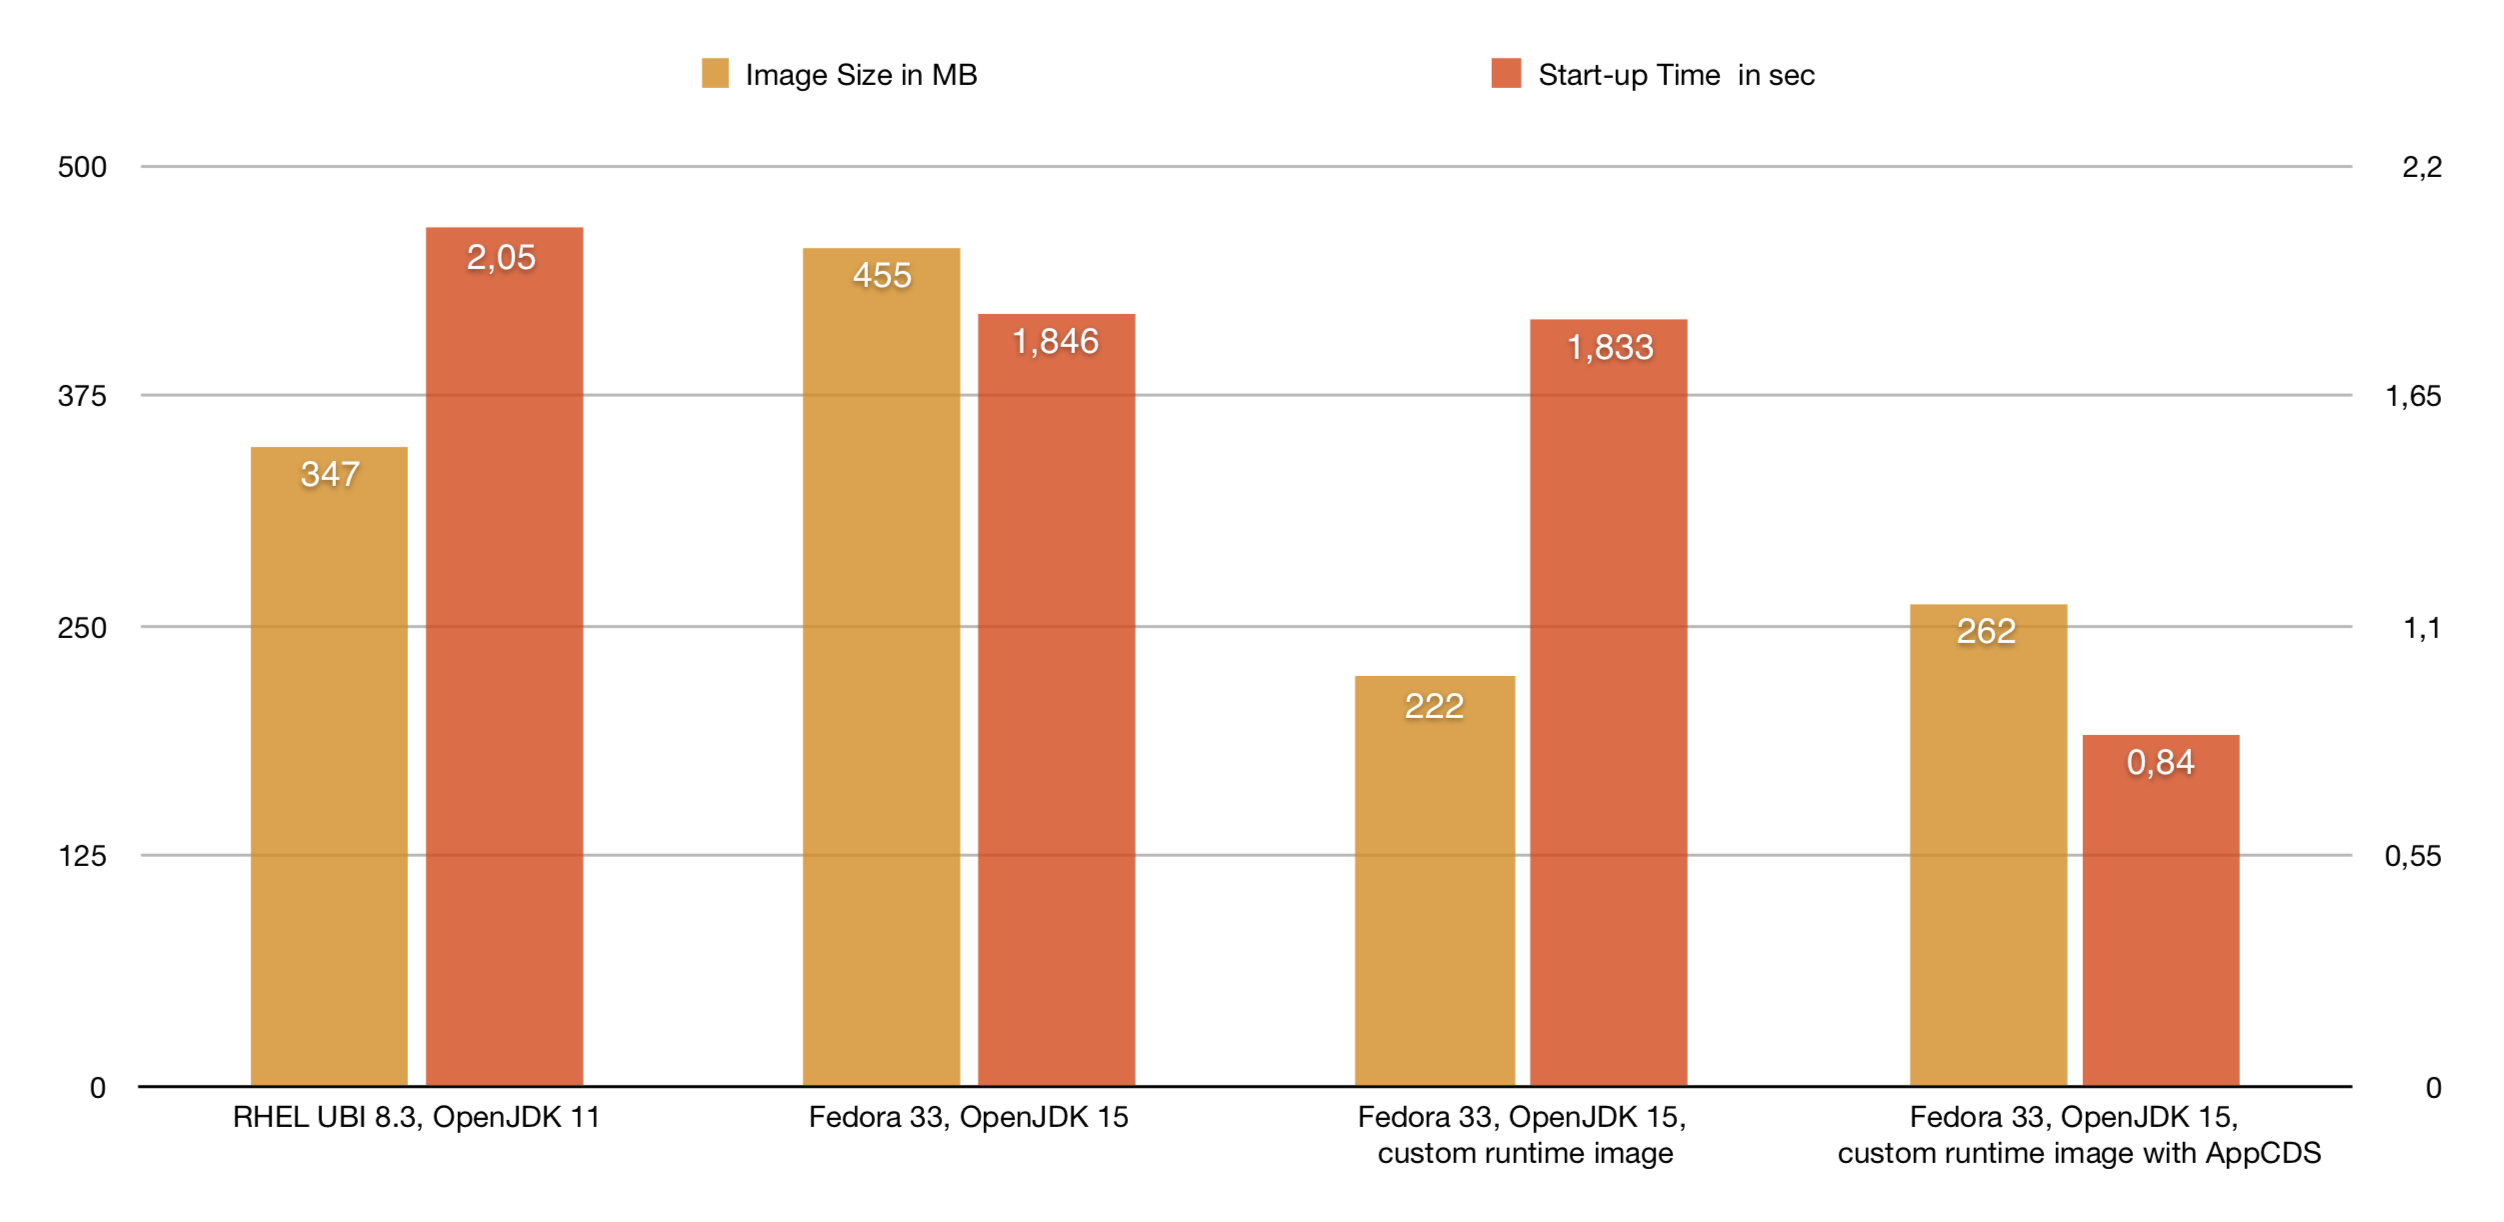 Container Image Sizes and Startup Times